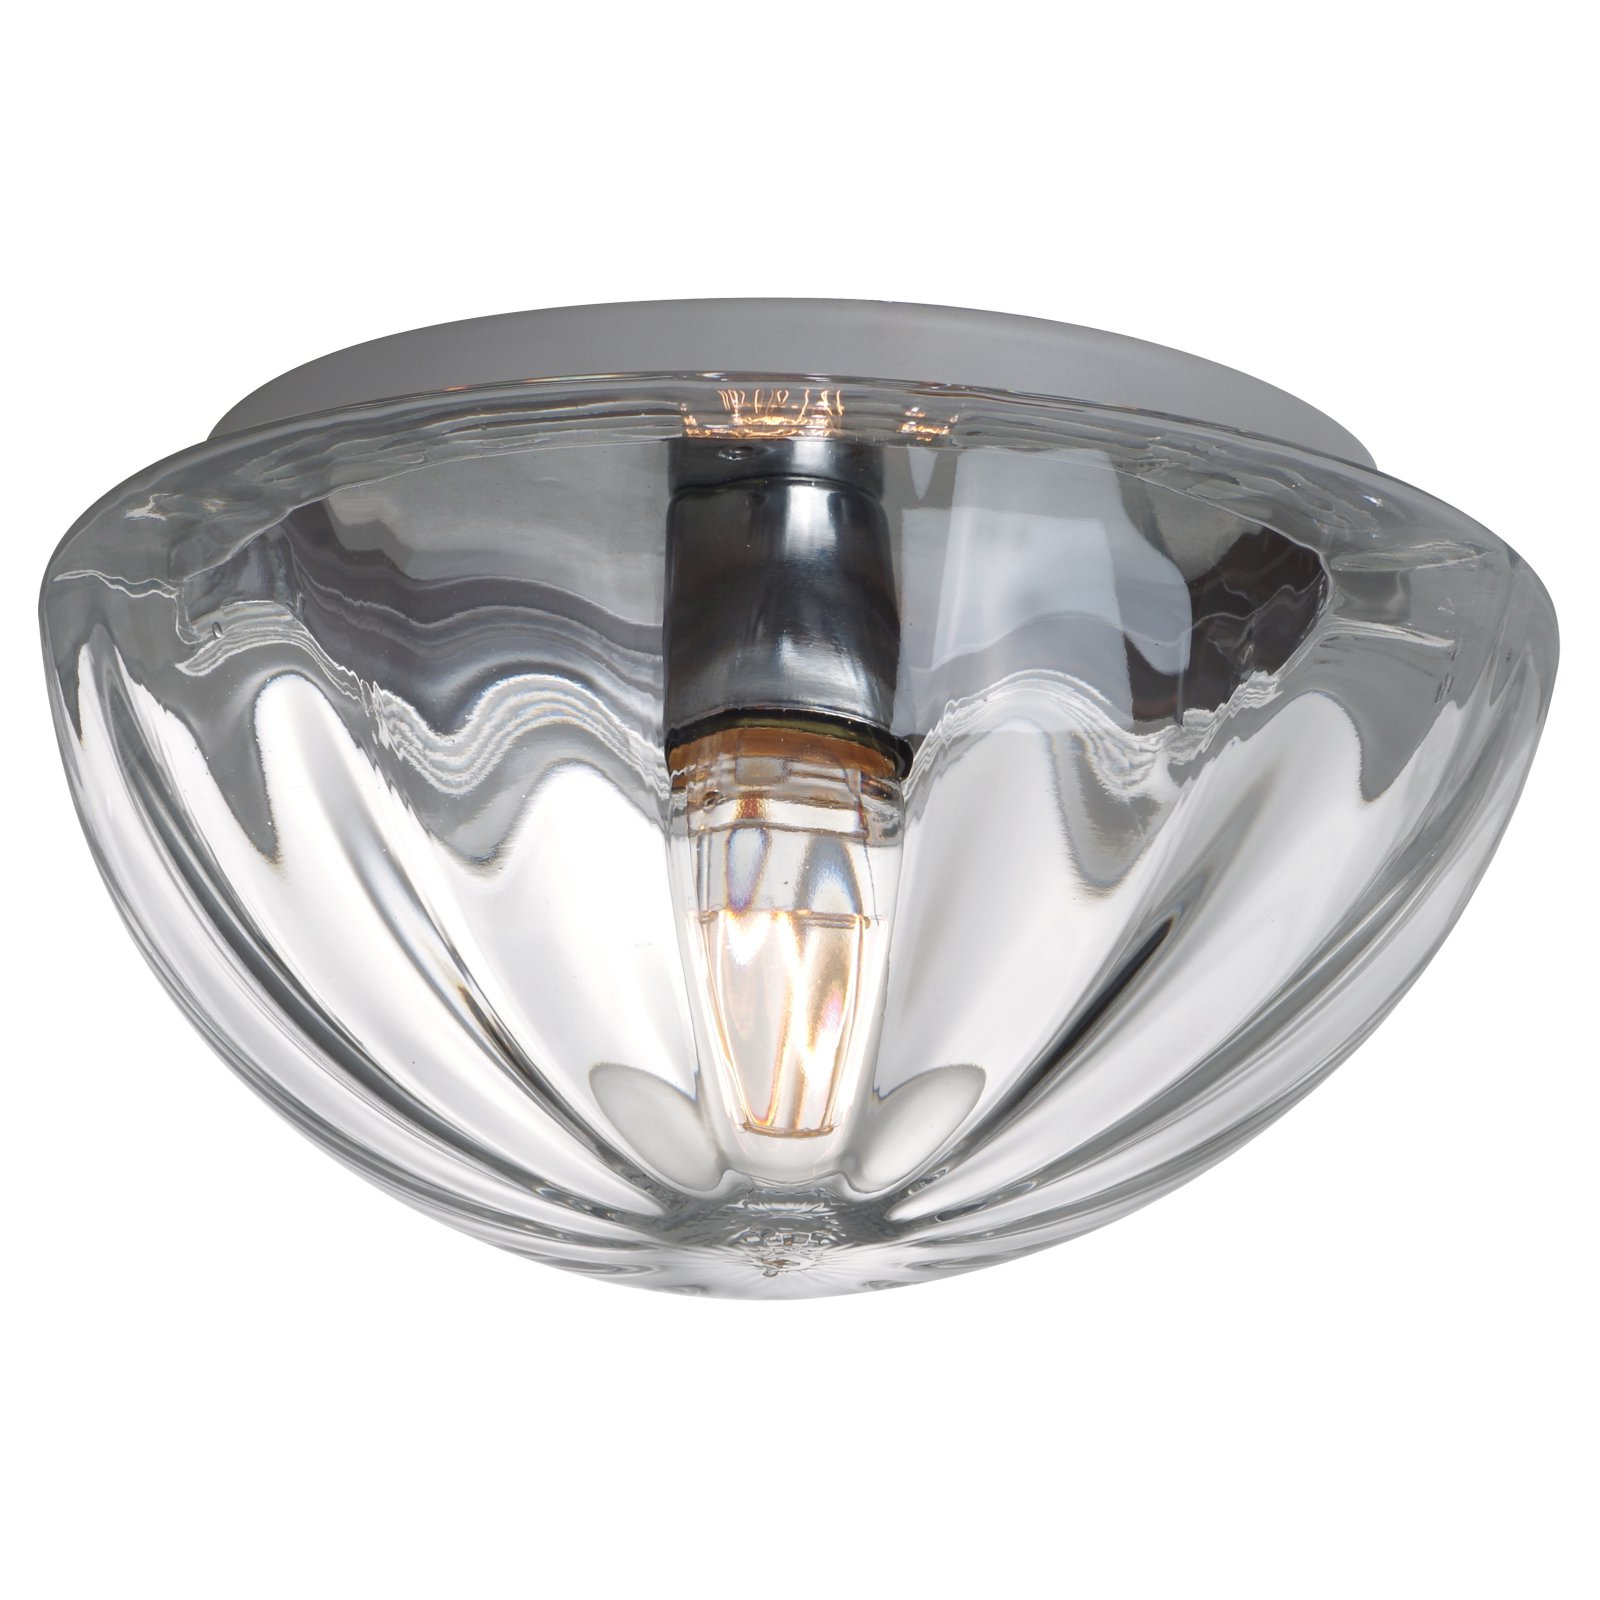 Besa Pinta 15 Ceiling Flush Mount Light with Clear Glass